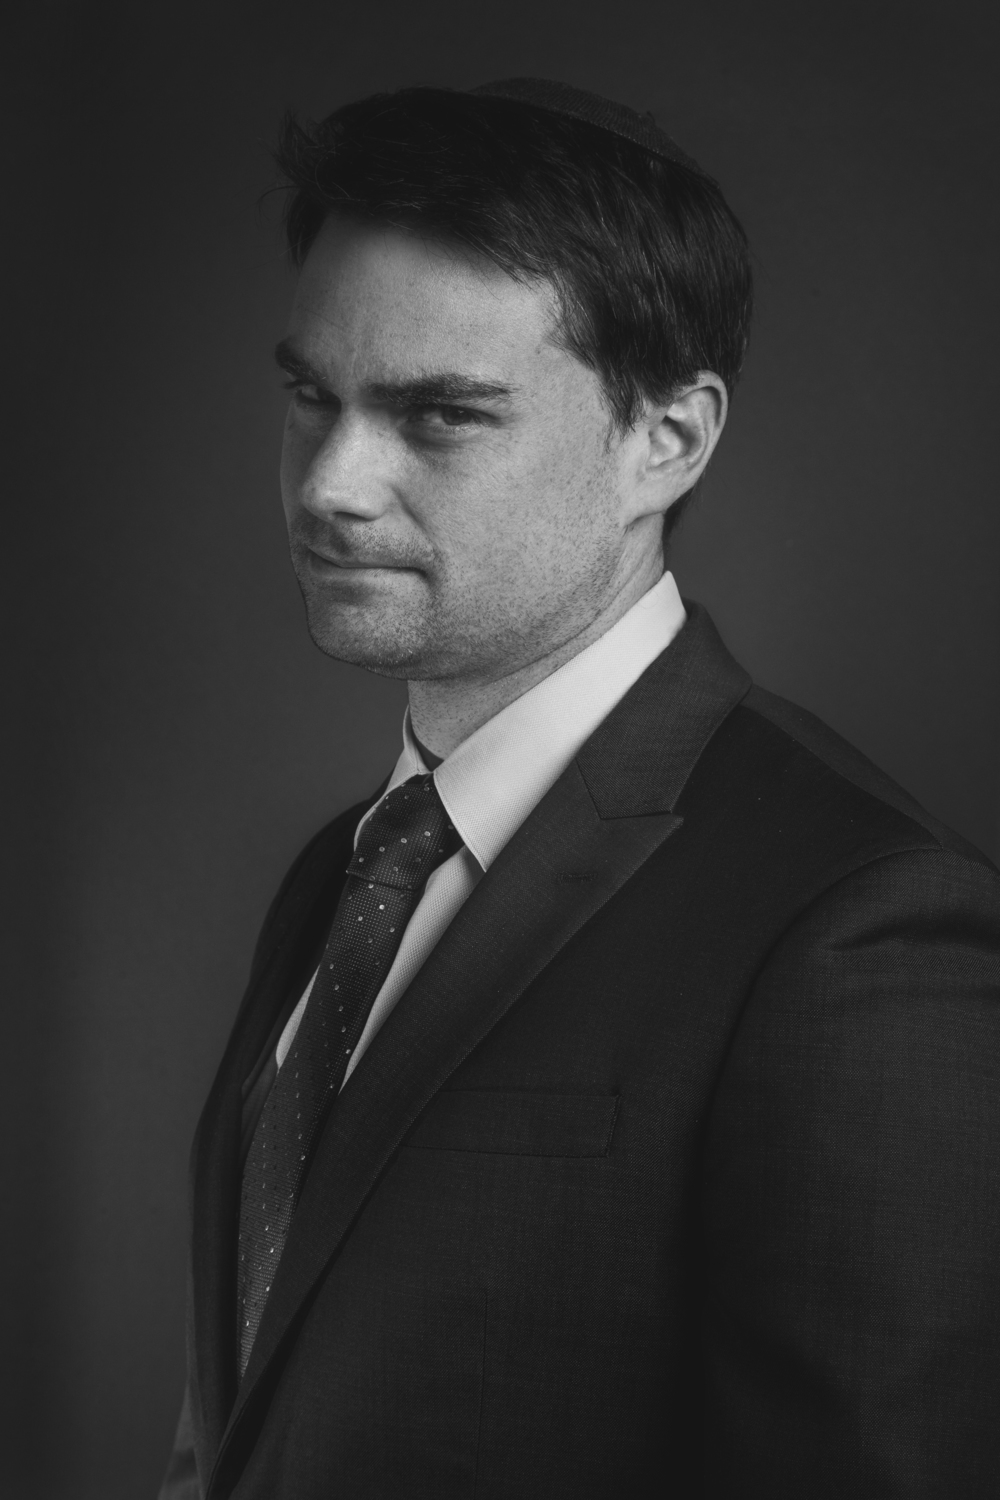 Ben Shapiro, political commentator